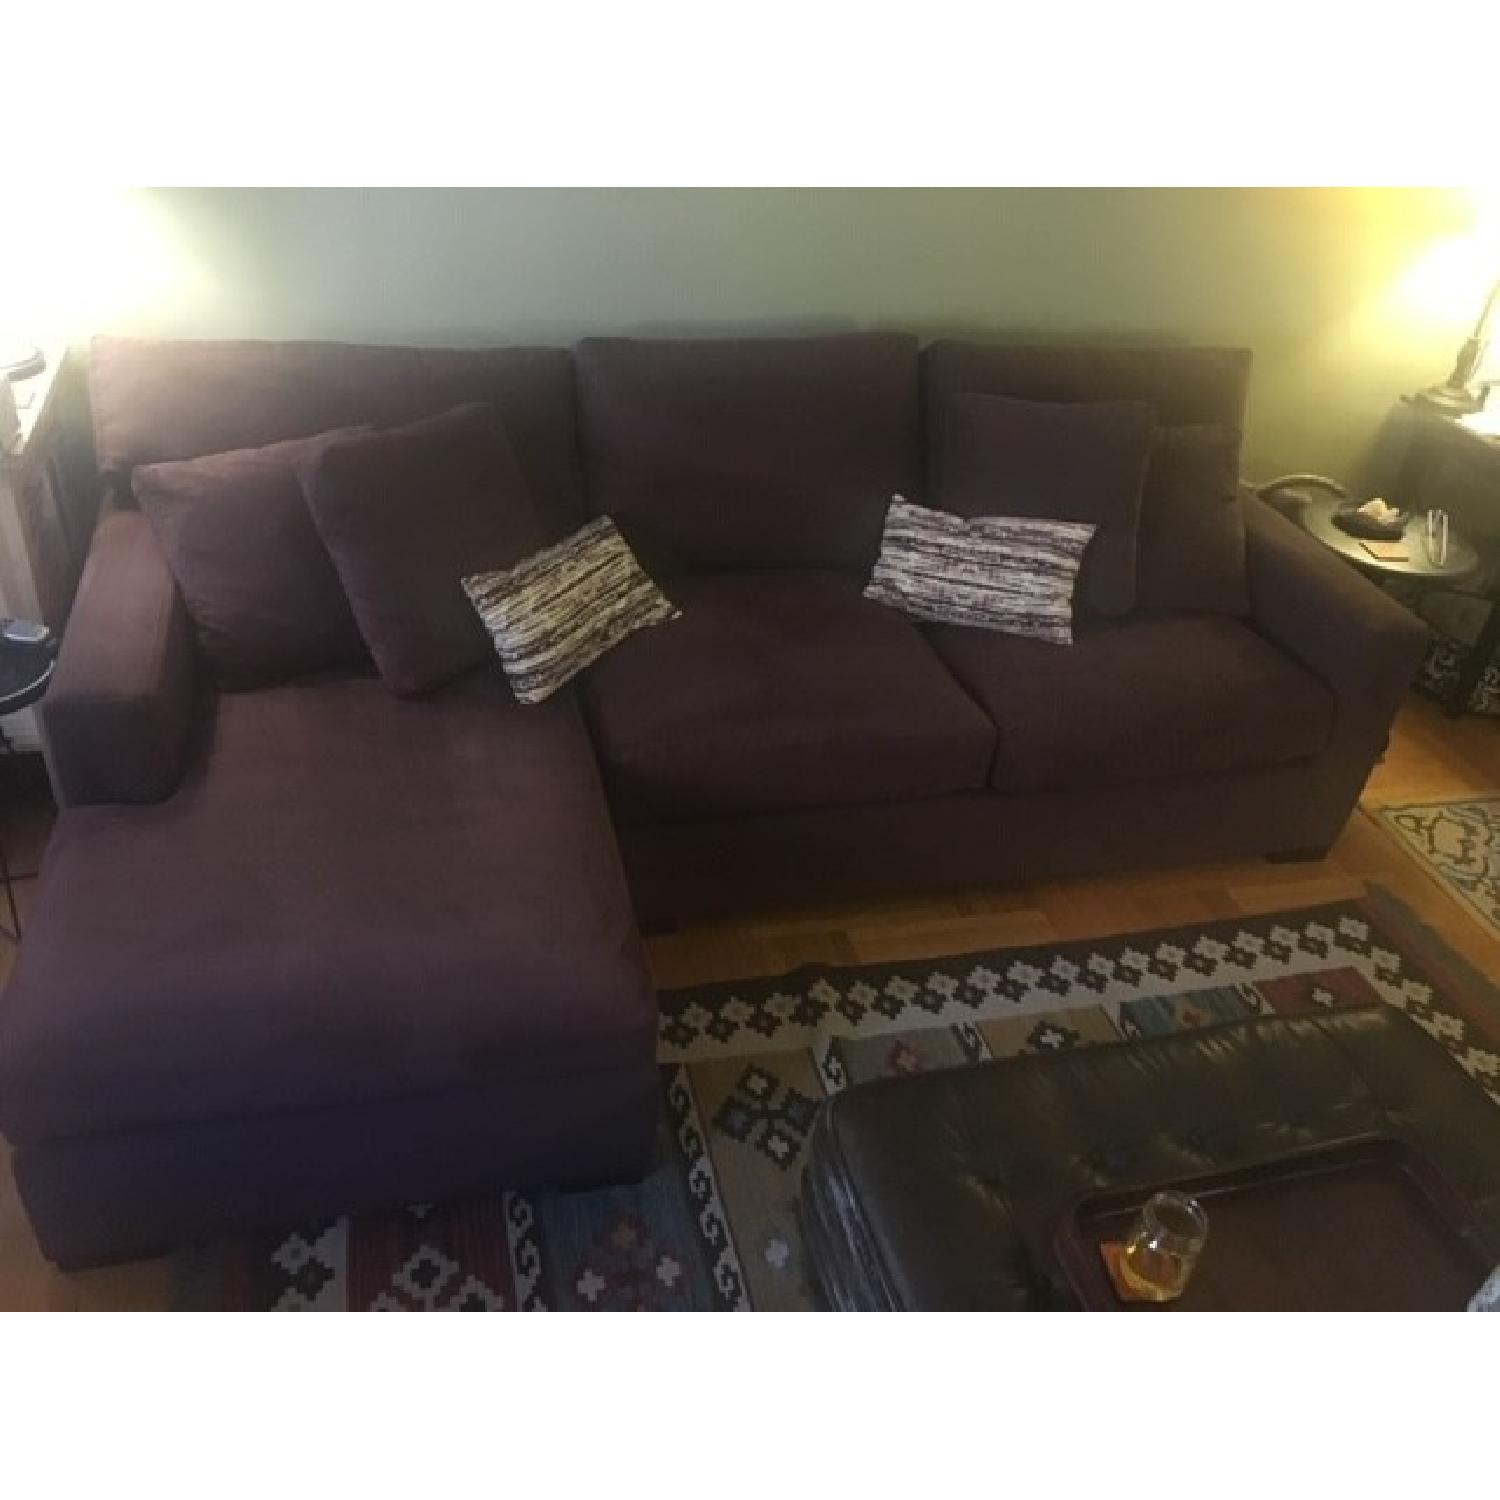 Crate & Barrel Left Arm Chaise Sectional Sofa in Eggplant-2